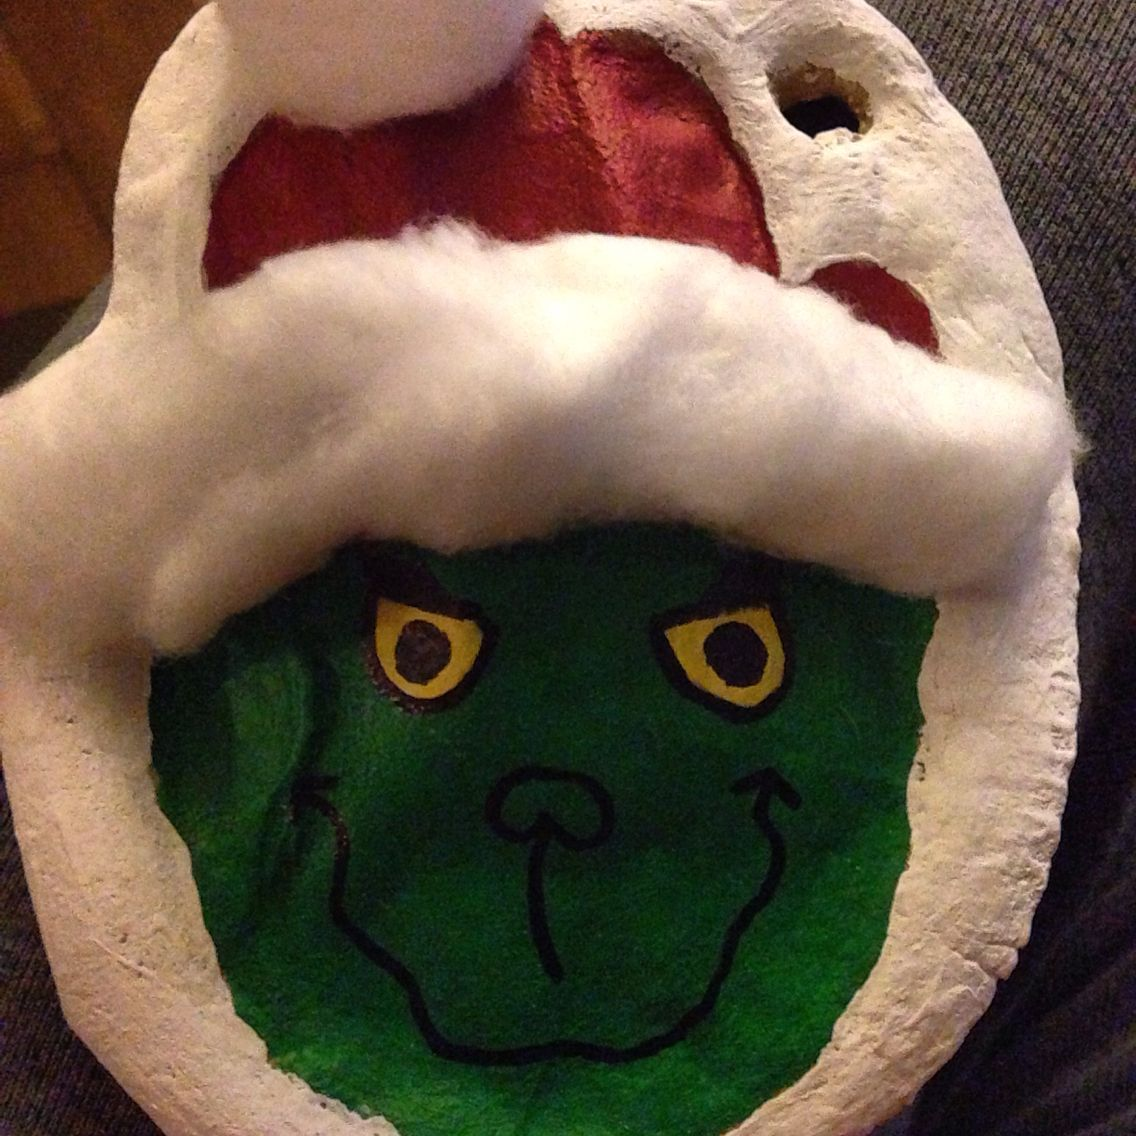 Salt Dough Grinch Ornament Use Child S Handprint In The Dough Paint And Add Cotton Christmas Crafts For Kids To Make Childs Handprint Handprint Crafts